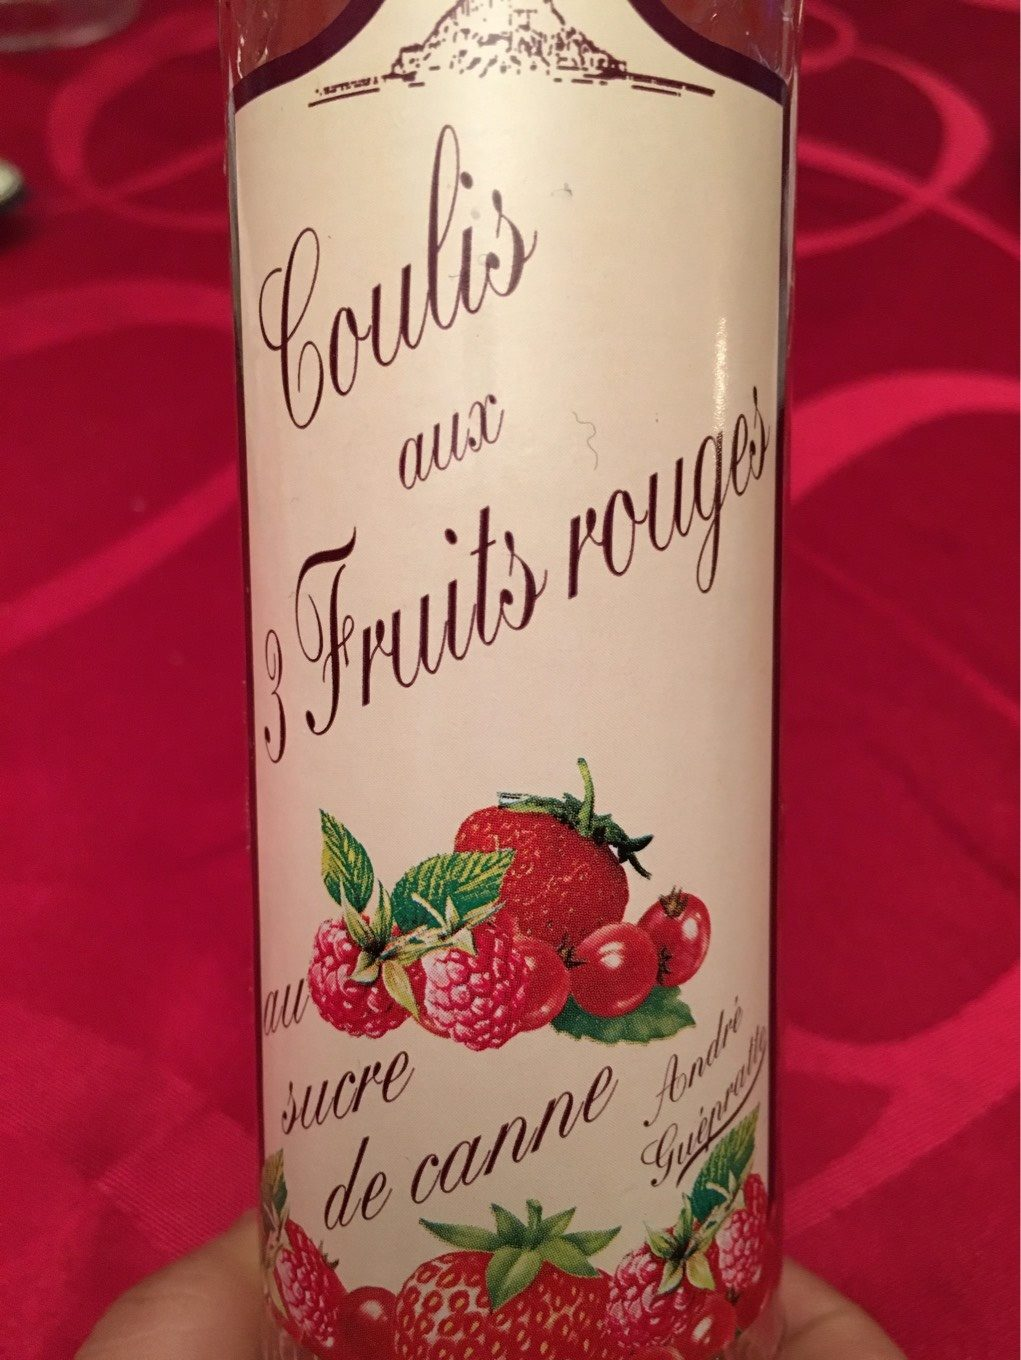 160G Coulis Fruits Rouges Guepratte - Product